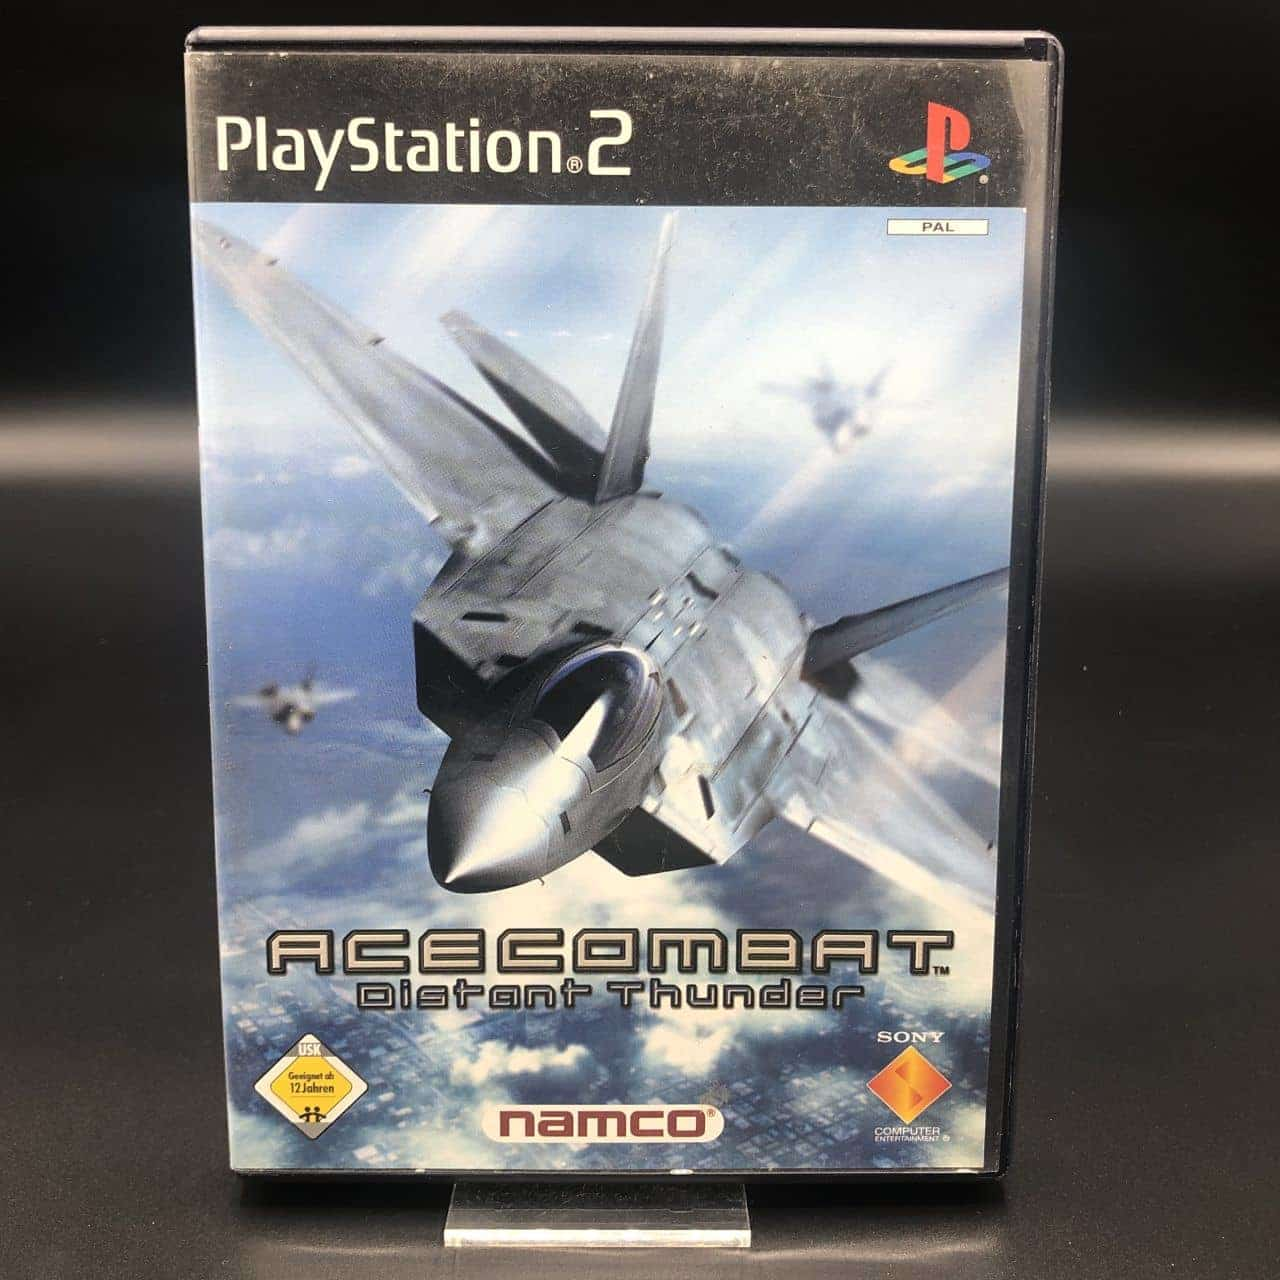 PS2 Ace Combat: Distant Thunder (Komplett) (Sehr gut) Sony PlayStation 2